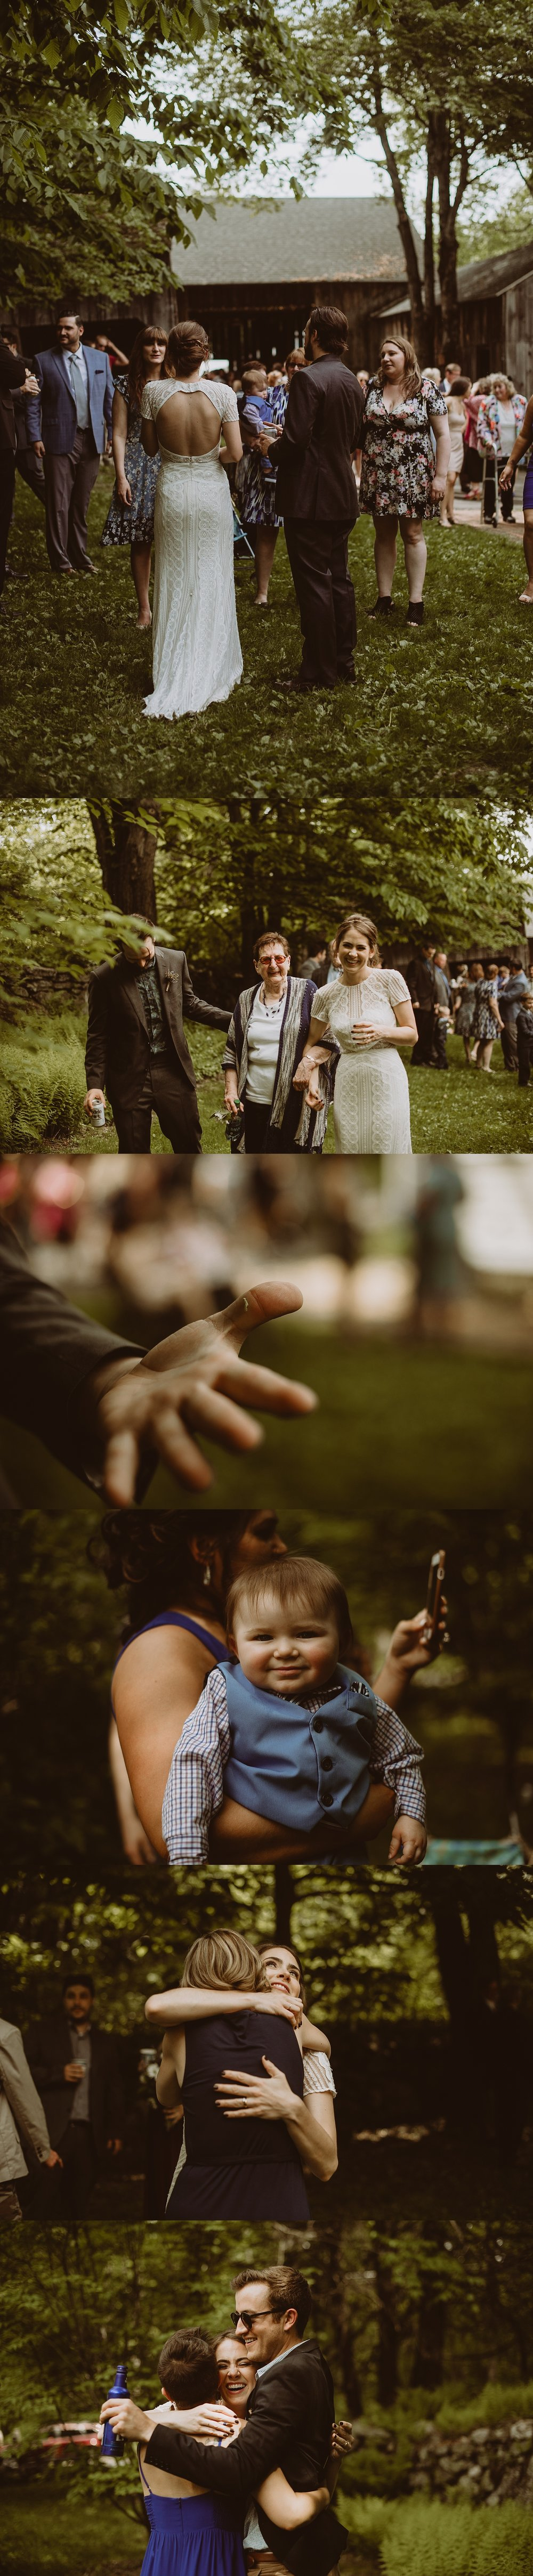 Brooklyn Skateboard Wedding (169 of 270).jpg